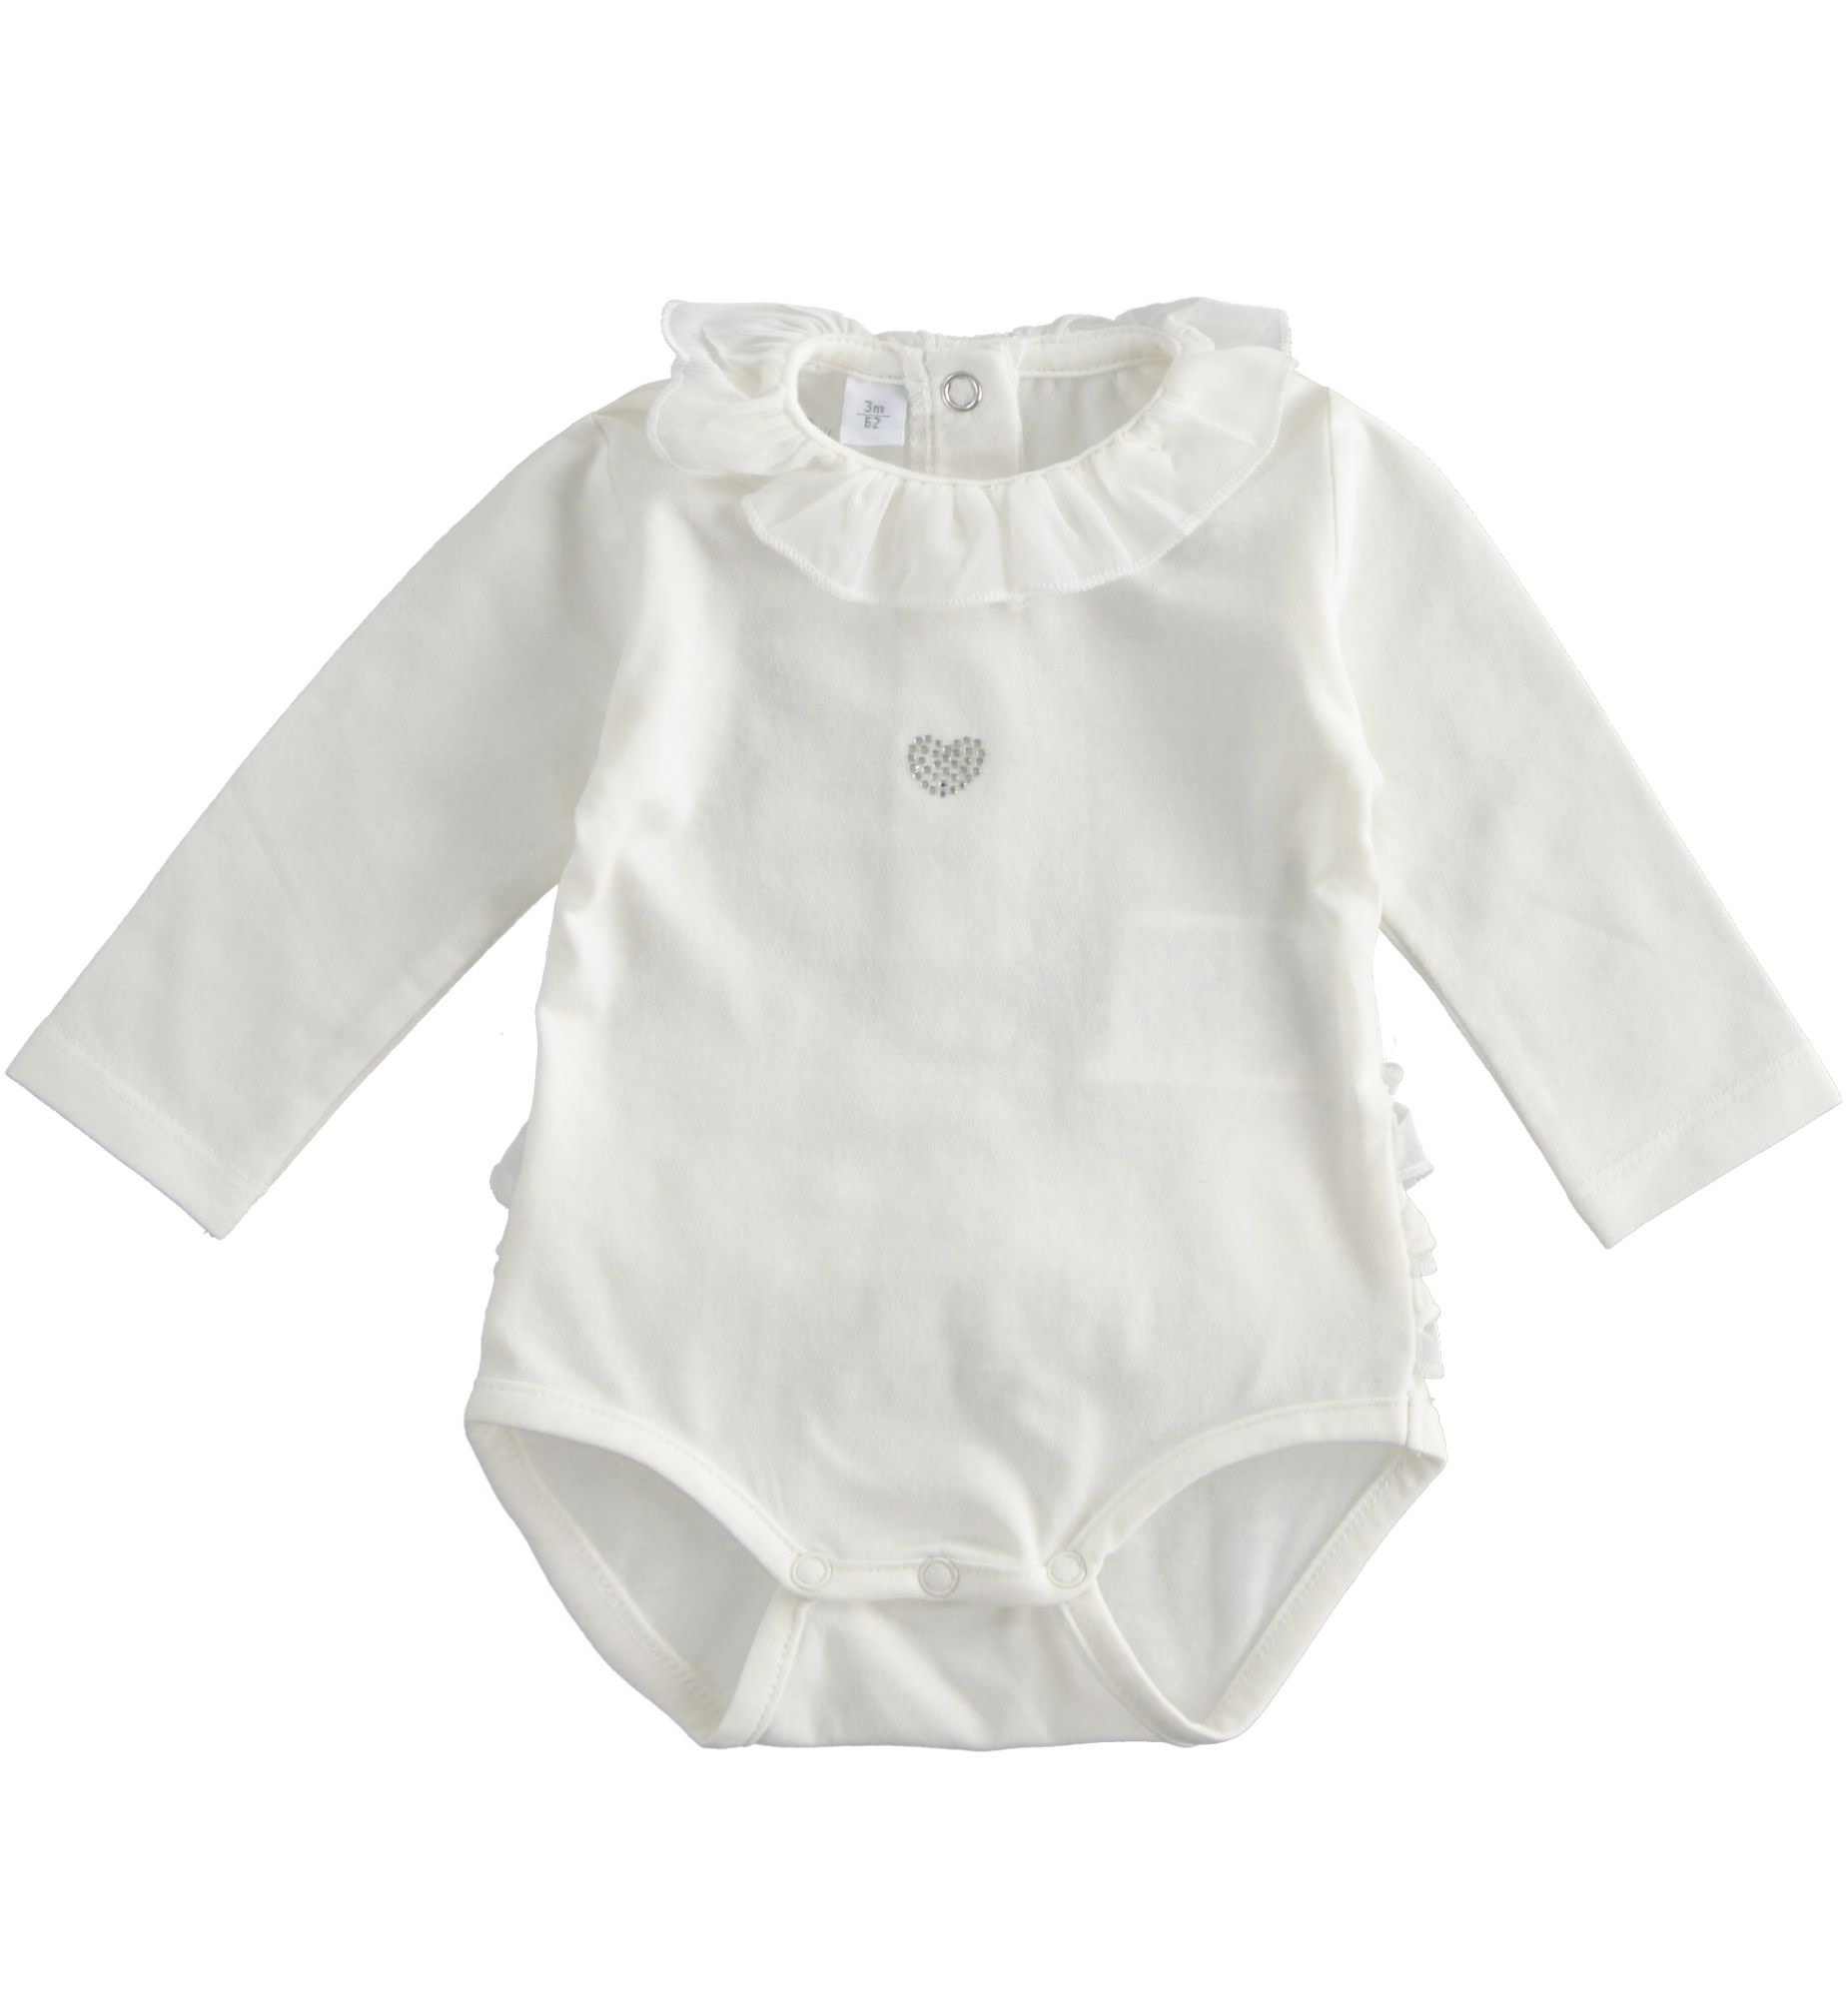 iDo iDO SS20 Girls Off White frilly bum vest with heart detail J150